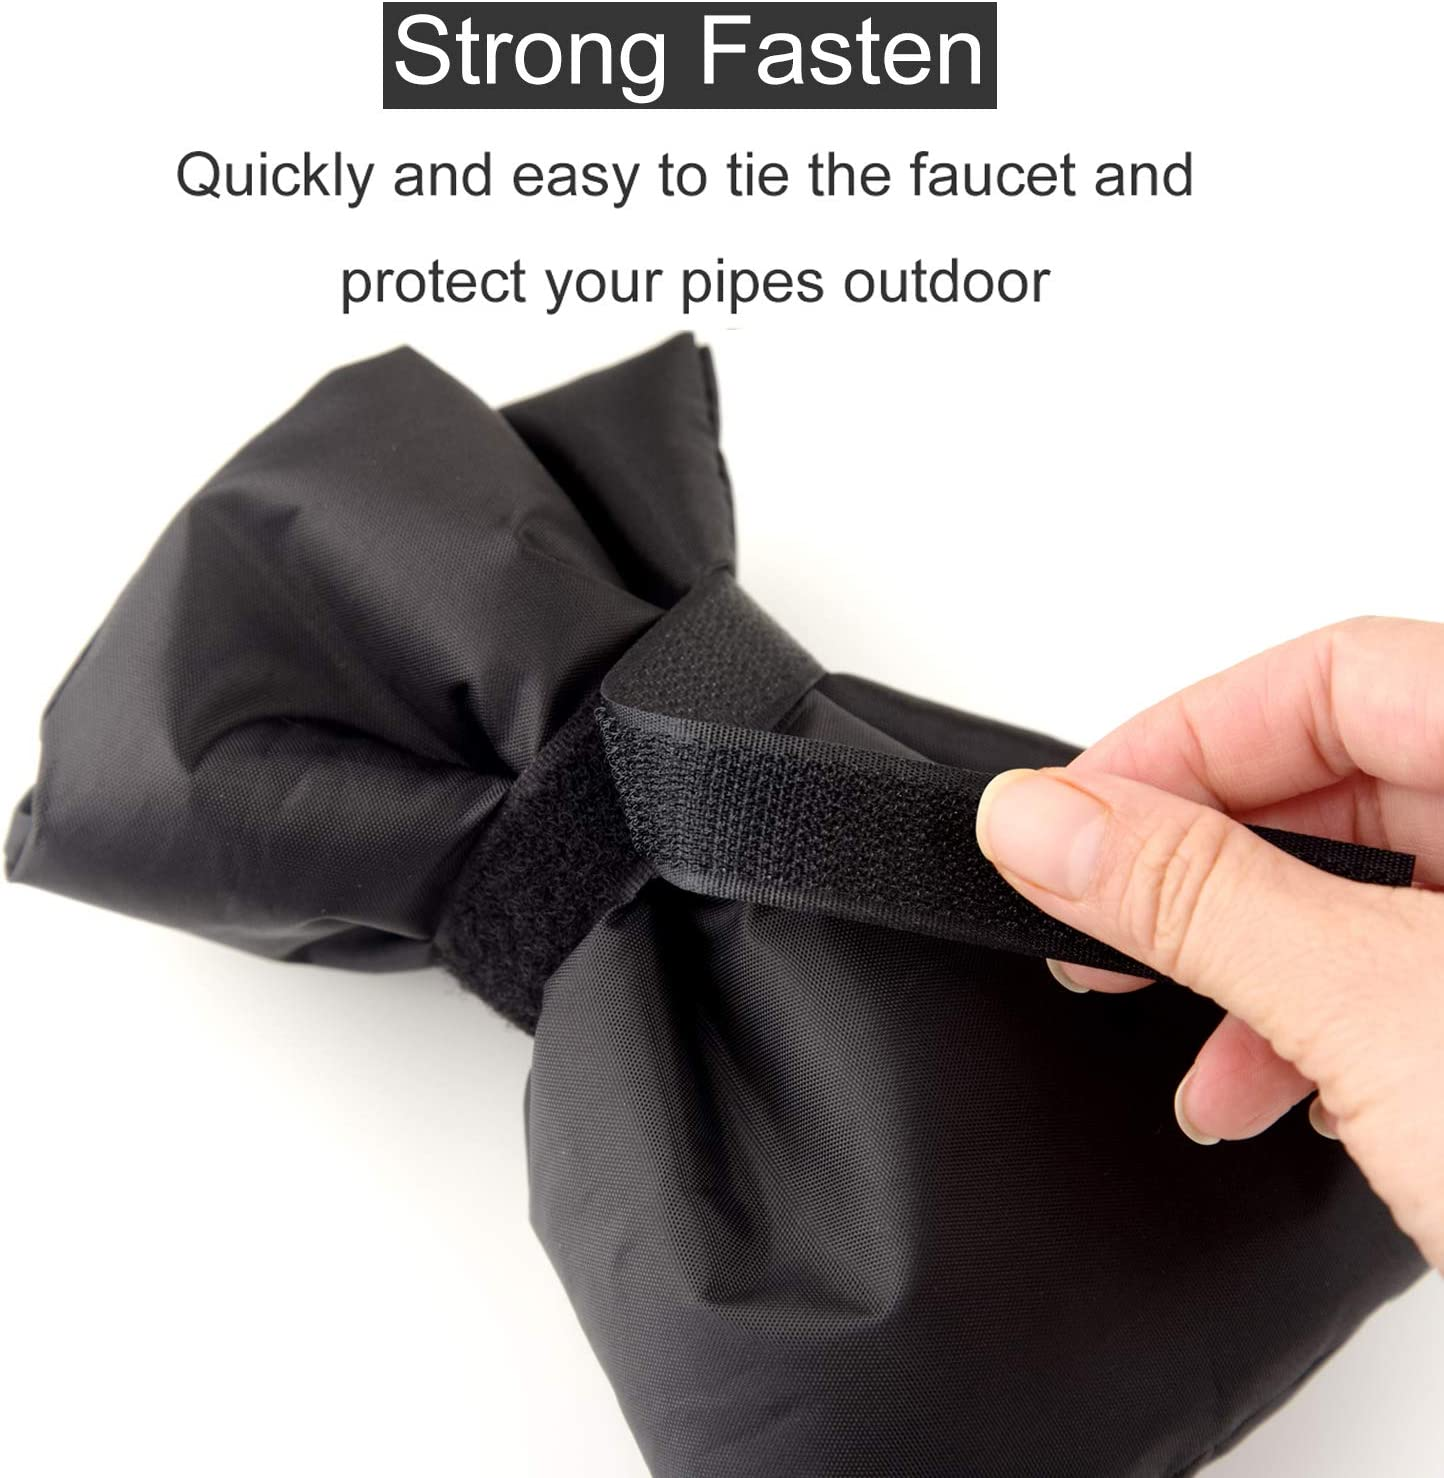 Size 8.66 x 7 inches(Black FEPITO Outdoor Tap Cover Frost Protector Faucet Cover Socks Garden Tap Jackets for Freeze Protection